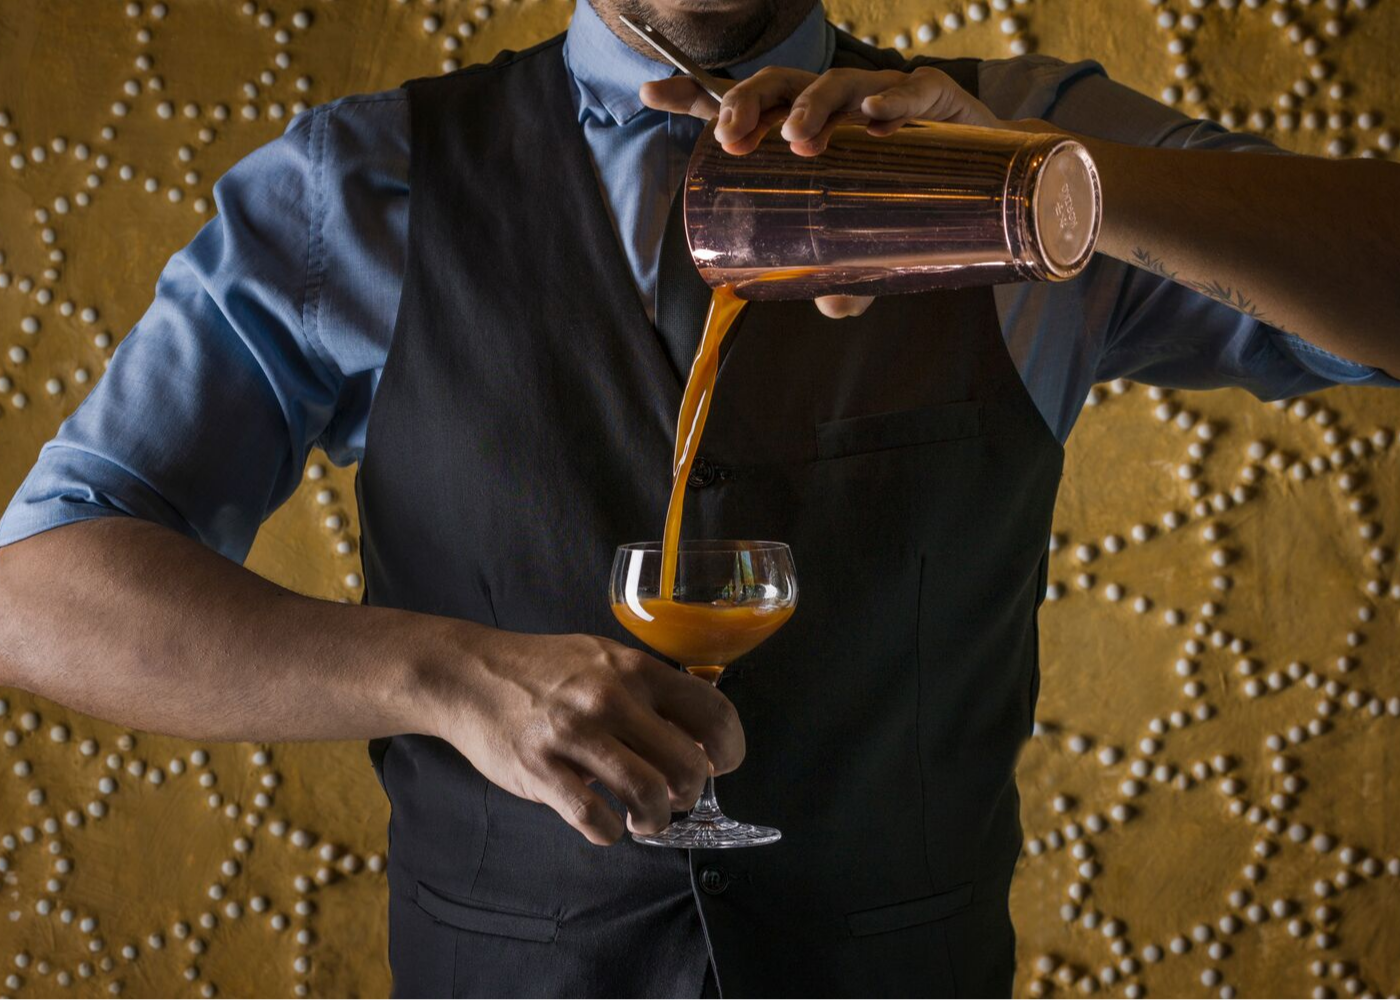 Hot New Bars & Tipples in October 2019: a 70s après ski scene, desi goodness, reimagined liquid mains and Hendrick's Orbium takeover